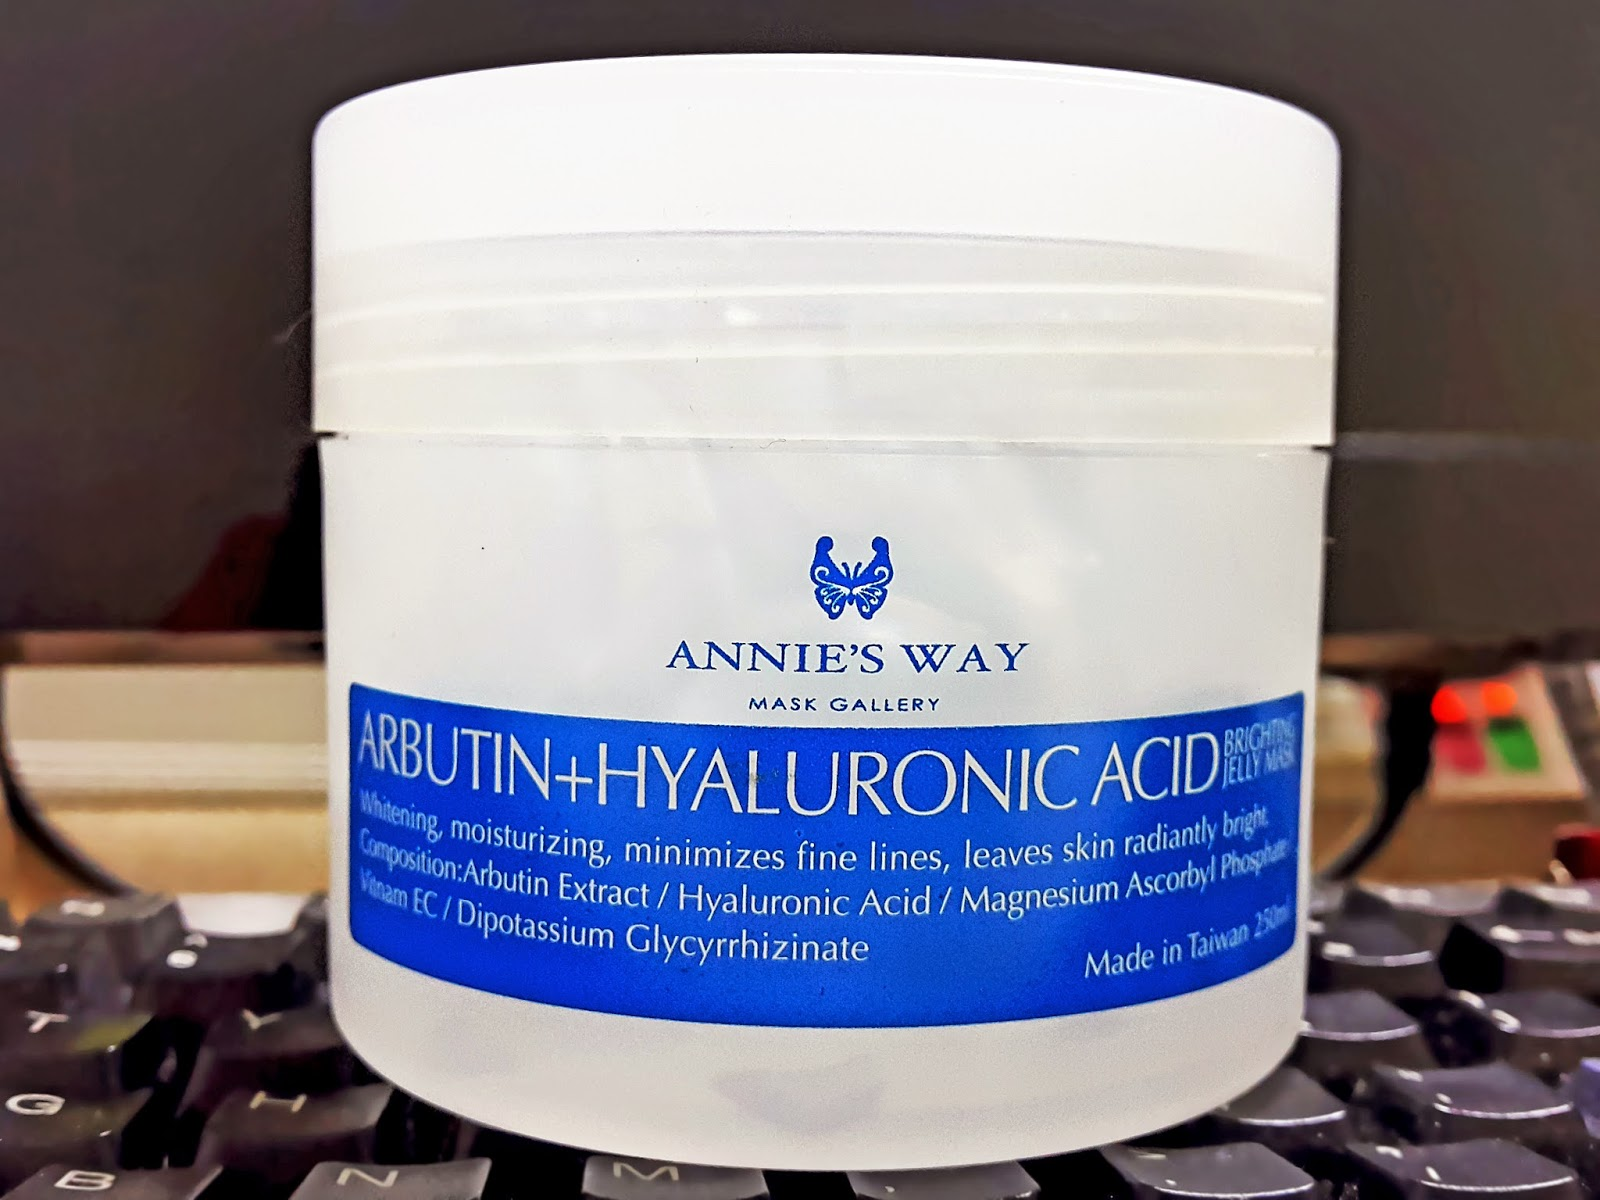 Review] Annie's Way Arbutin + Hyaluronic Acid Brightening Jelly Mask